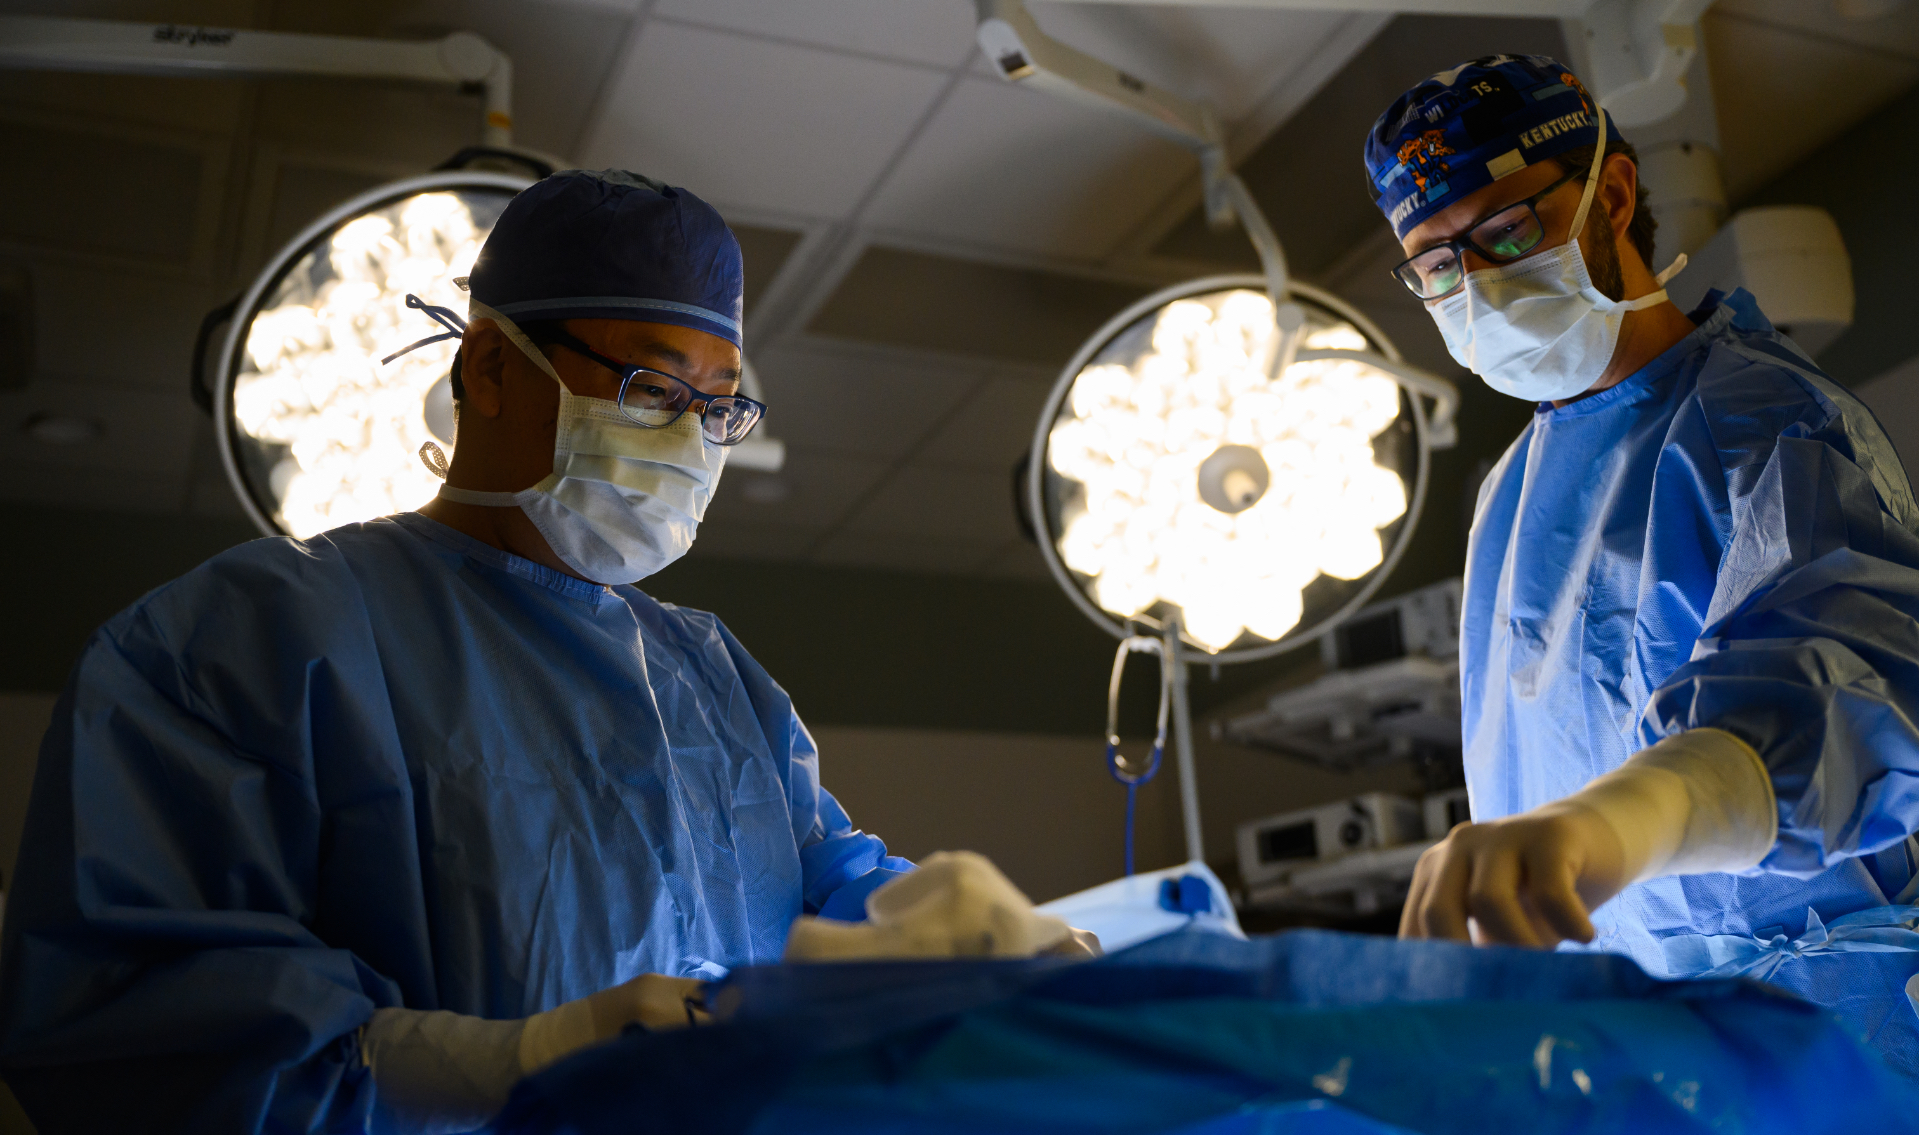 Dr. Kim (left) and Dr. Bell (right), a white with glasses and a brown beard, both in full surgical gear looked focused and determined as they stood over the operating table, while lights shine down on them.